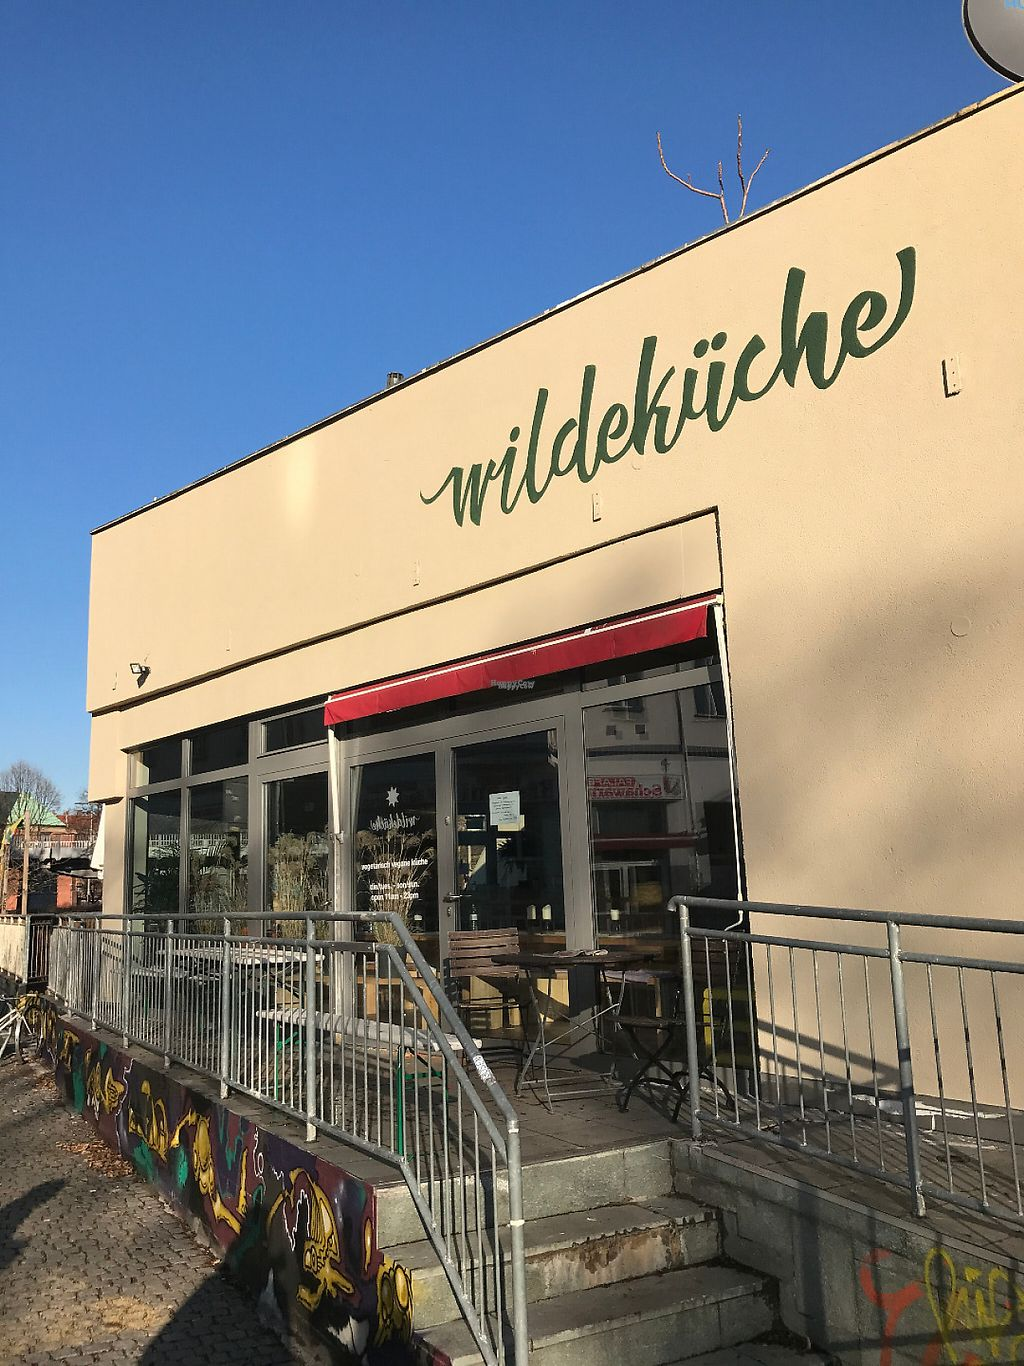 """Photo of Wildeküche  by <a href=""""/members/profile/Dakini05"""">Dakini05</a> <br/>Entrance of Wilde Küche <br/> January 25, 2017  - <a href='/contact/abuse/image/80903/216724'>Report</a>"""